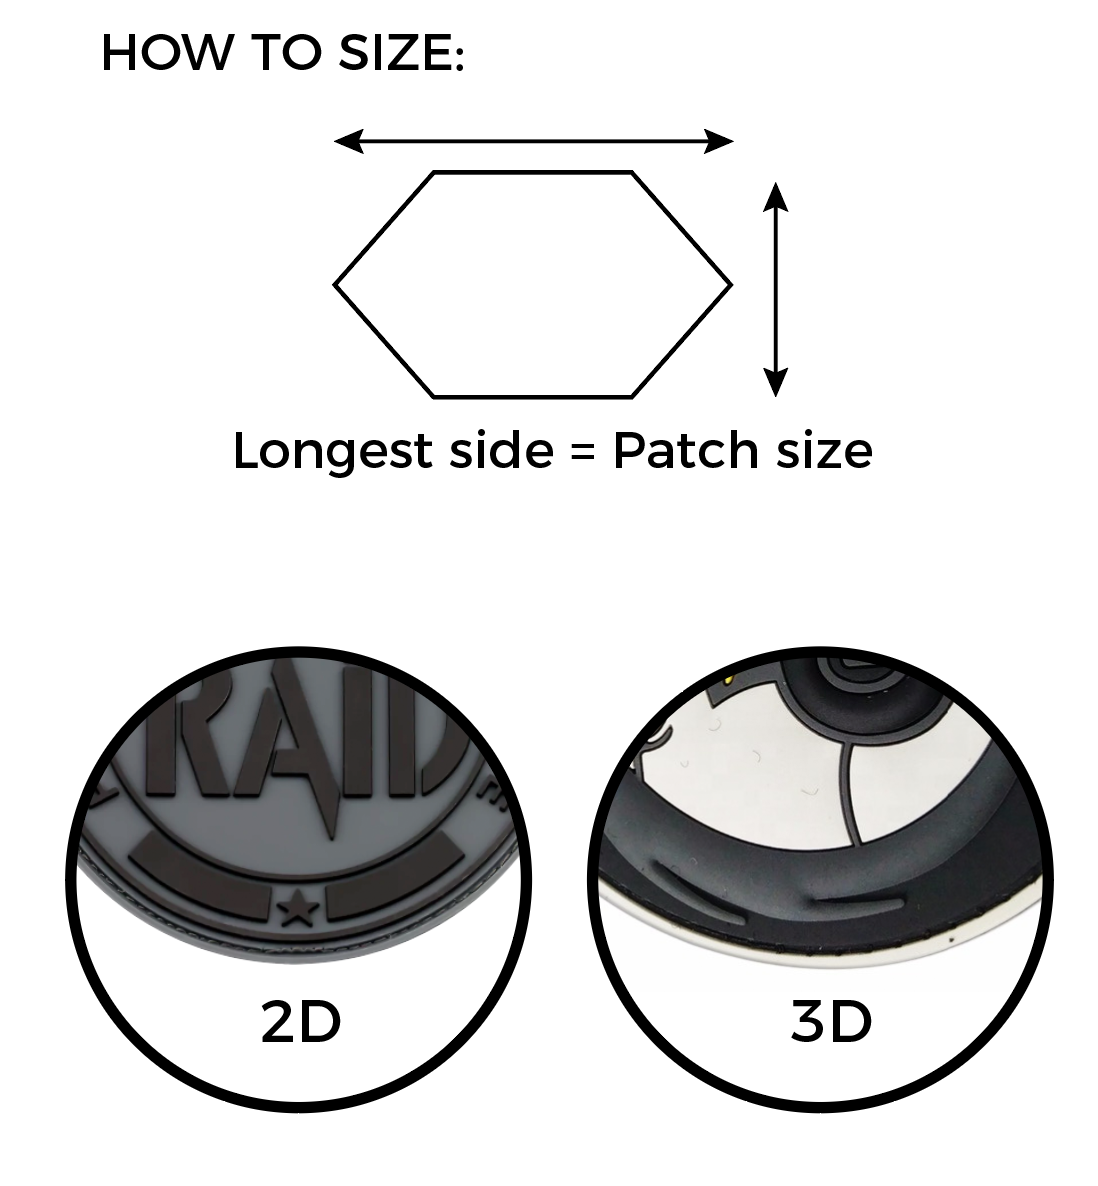 pvc-patch-sizing.png